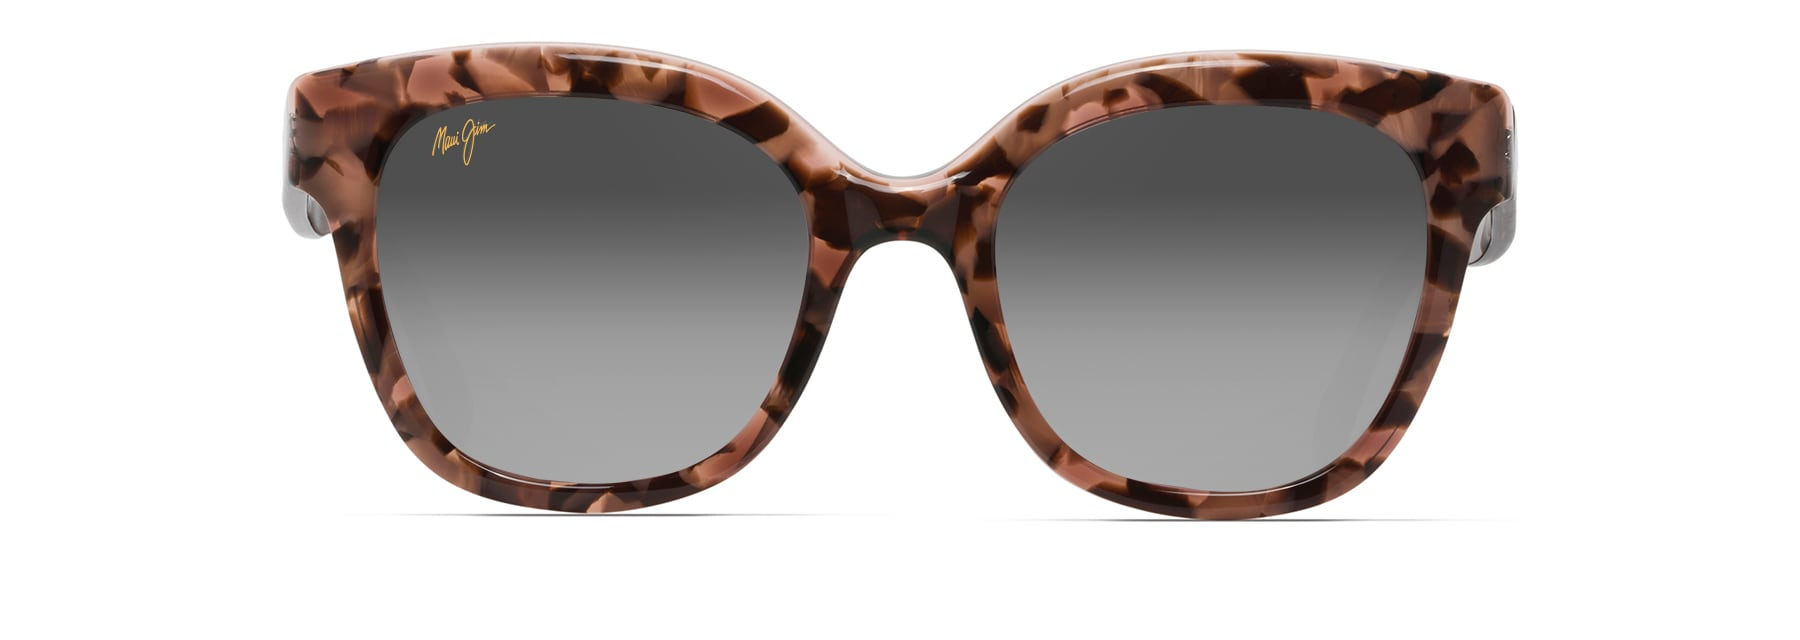 8ae42e786e8f Custom Honey Girl Polarized Sunglasses | Maui Jim®